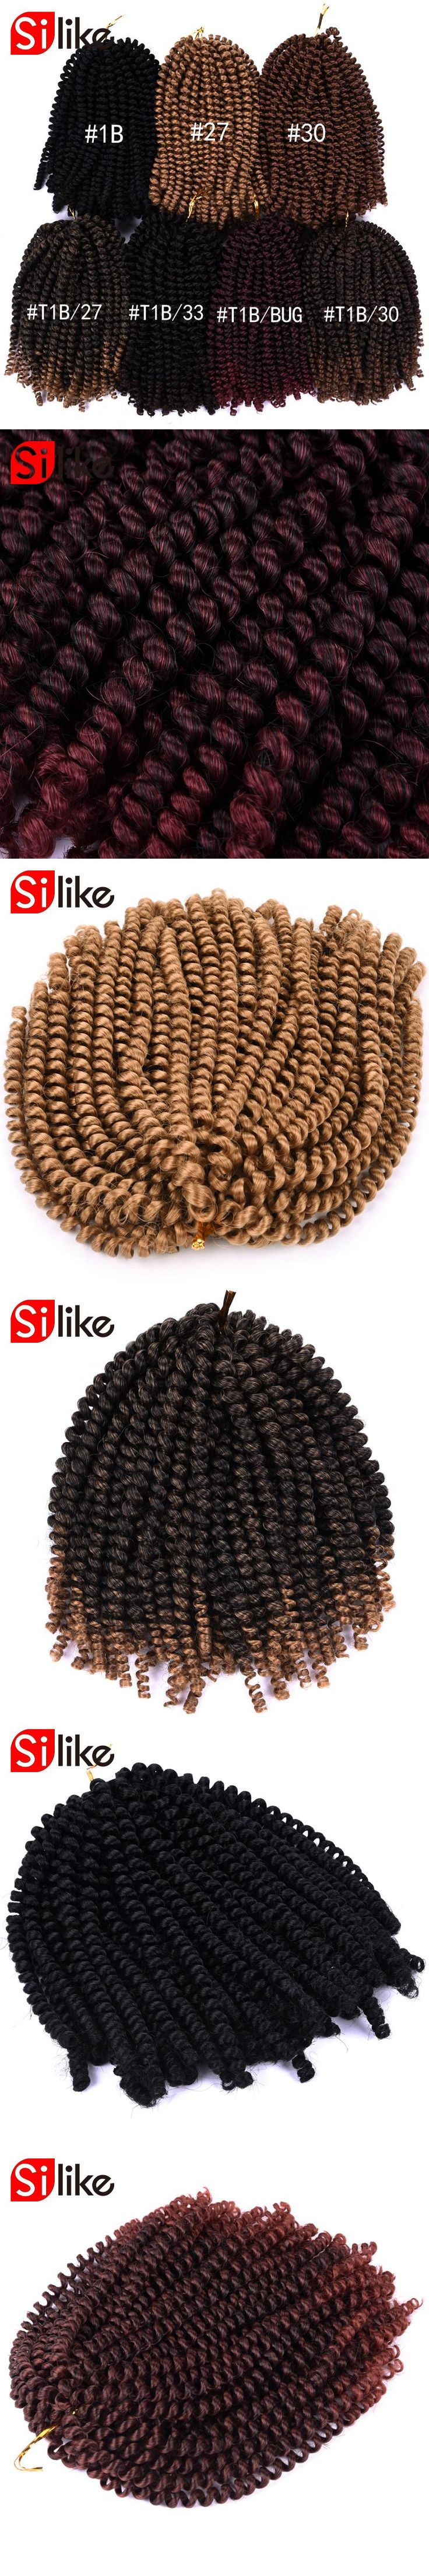 Silike 8 inch Crochet Braids Ombre Spring Twist Hair Kanekalon Synthetic Hair Extensions Braids 110g/pack for women